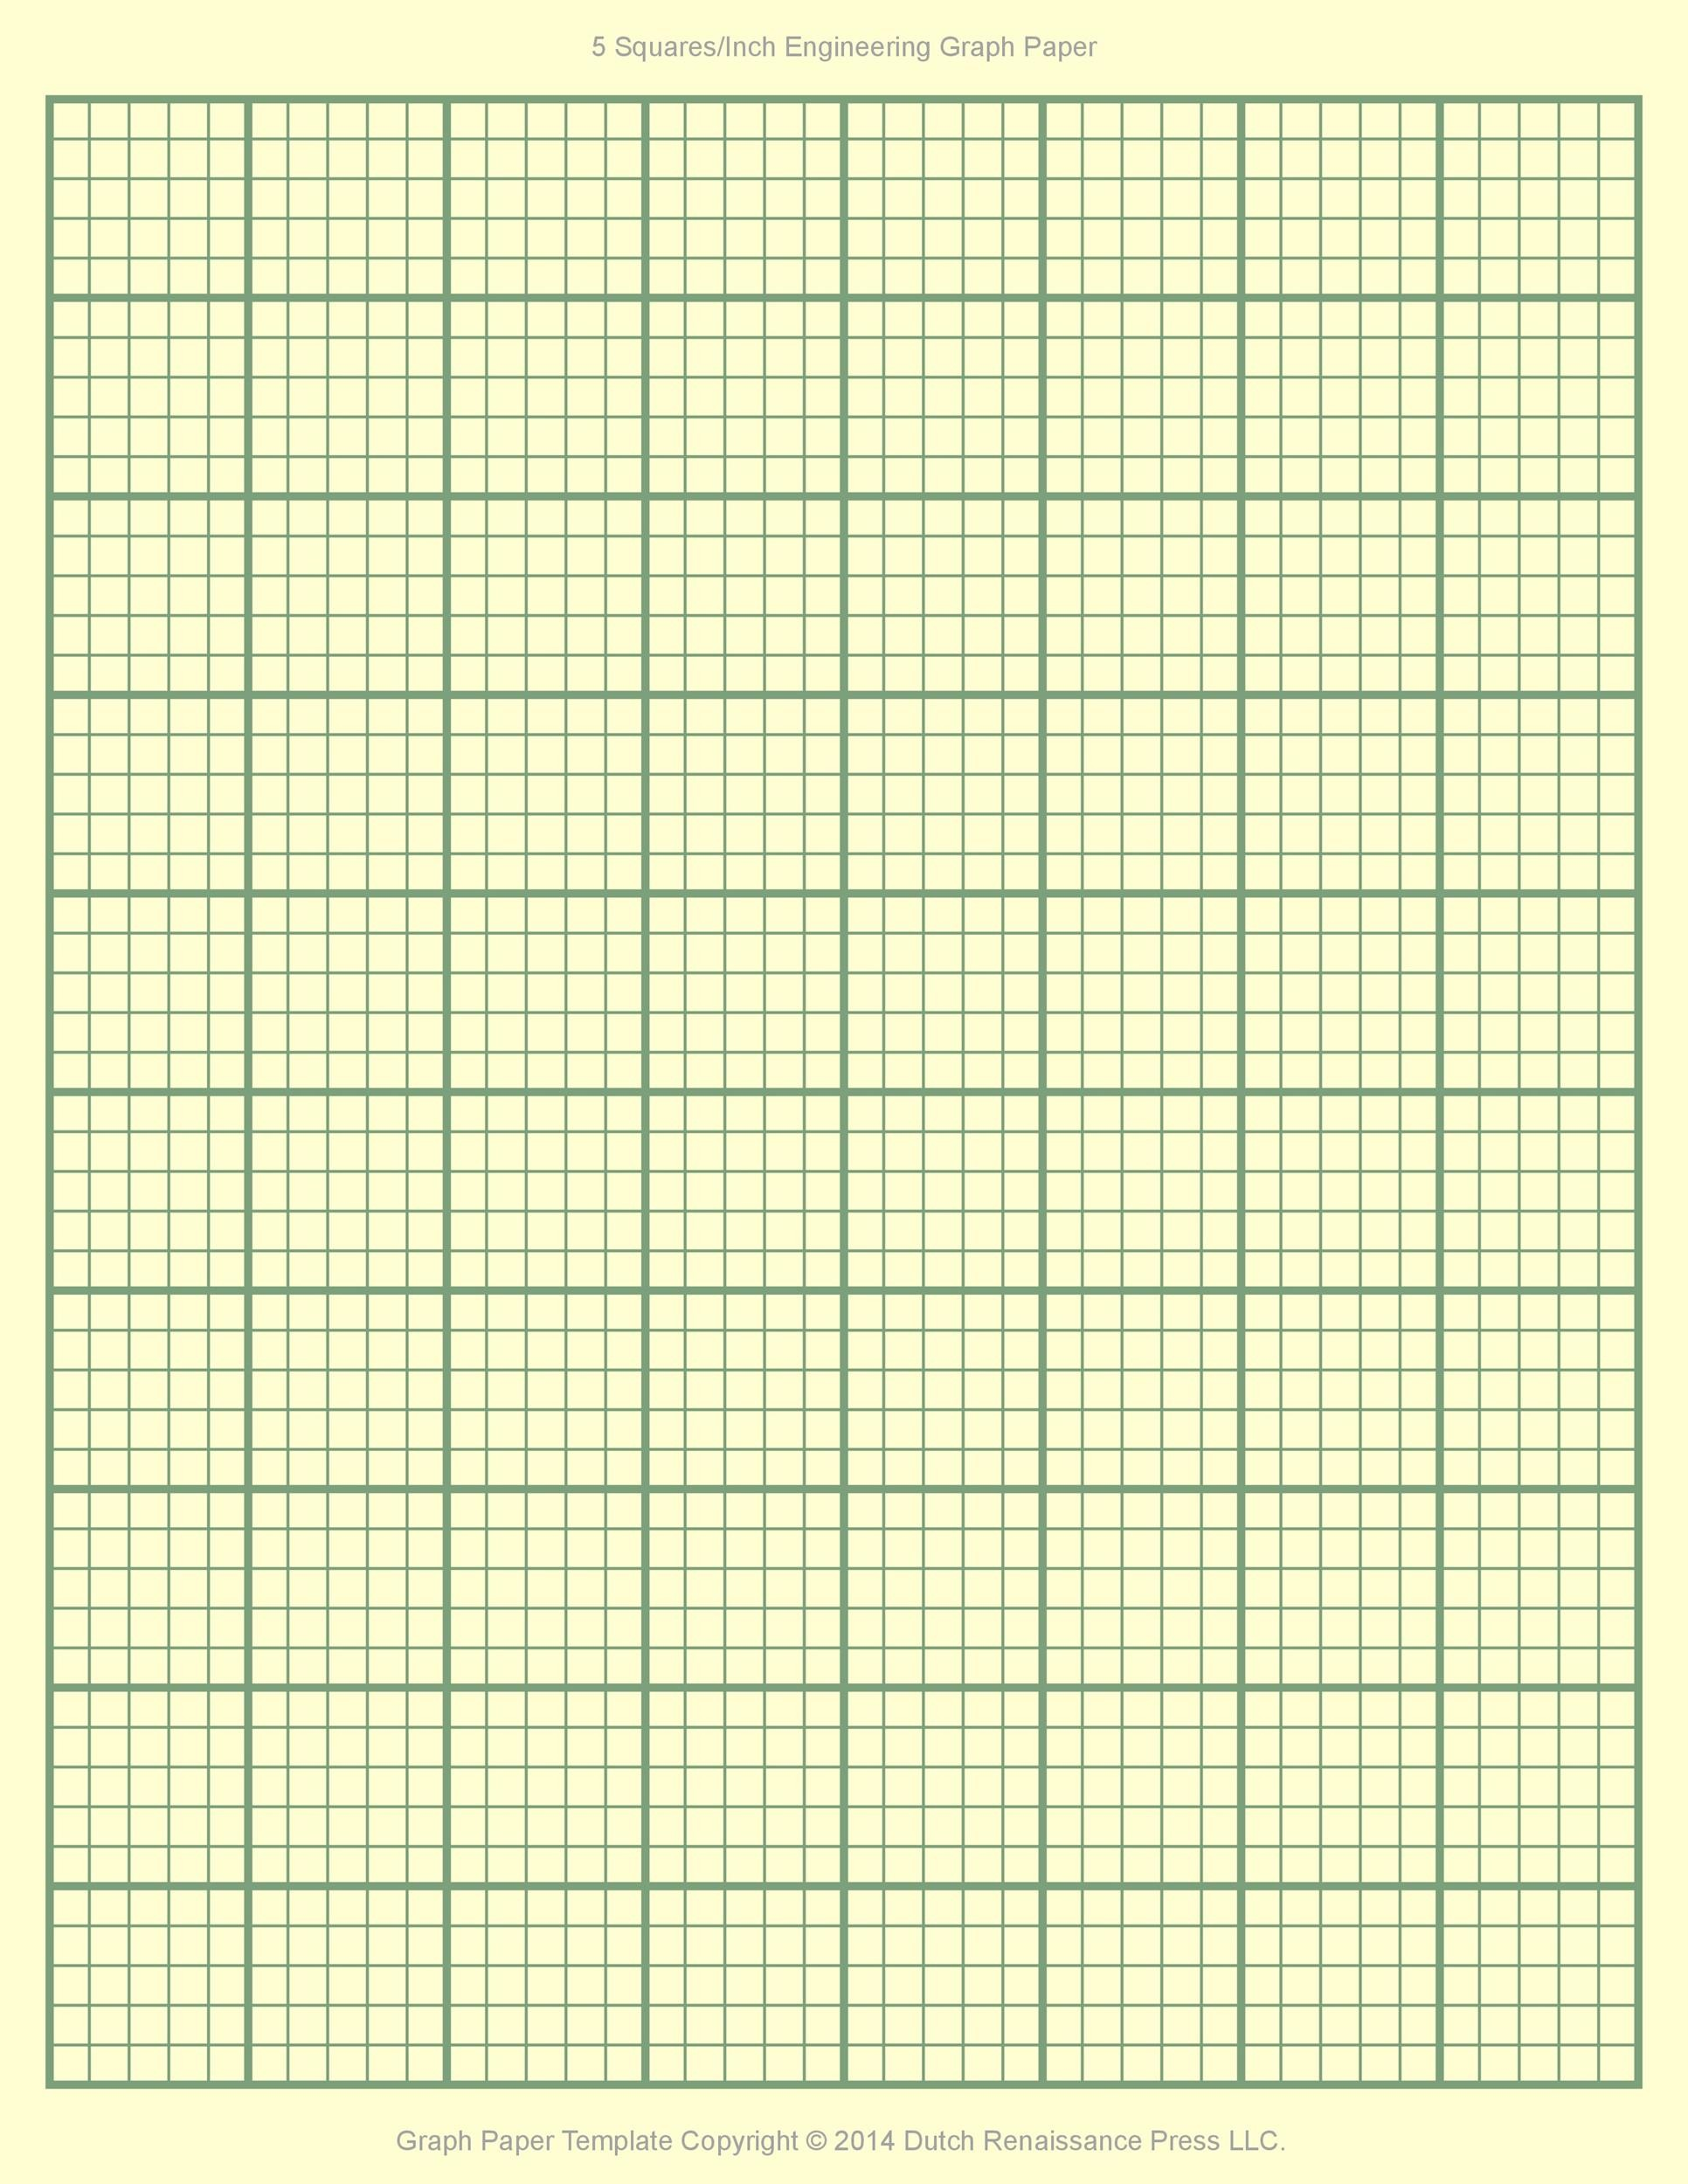 30 Free Printable Graph Paper Templates Word Pdf ᐅ